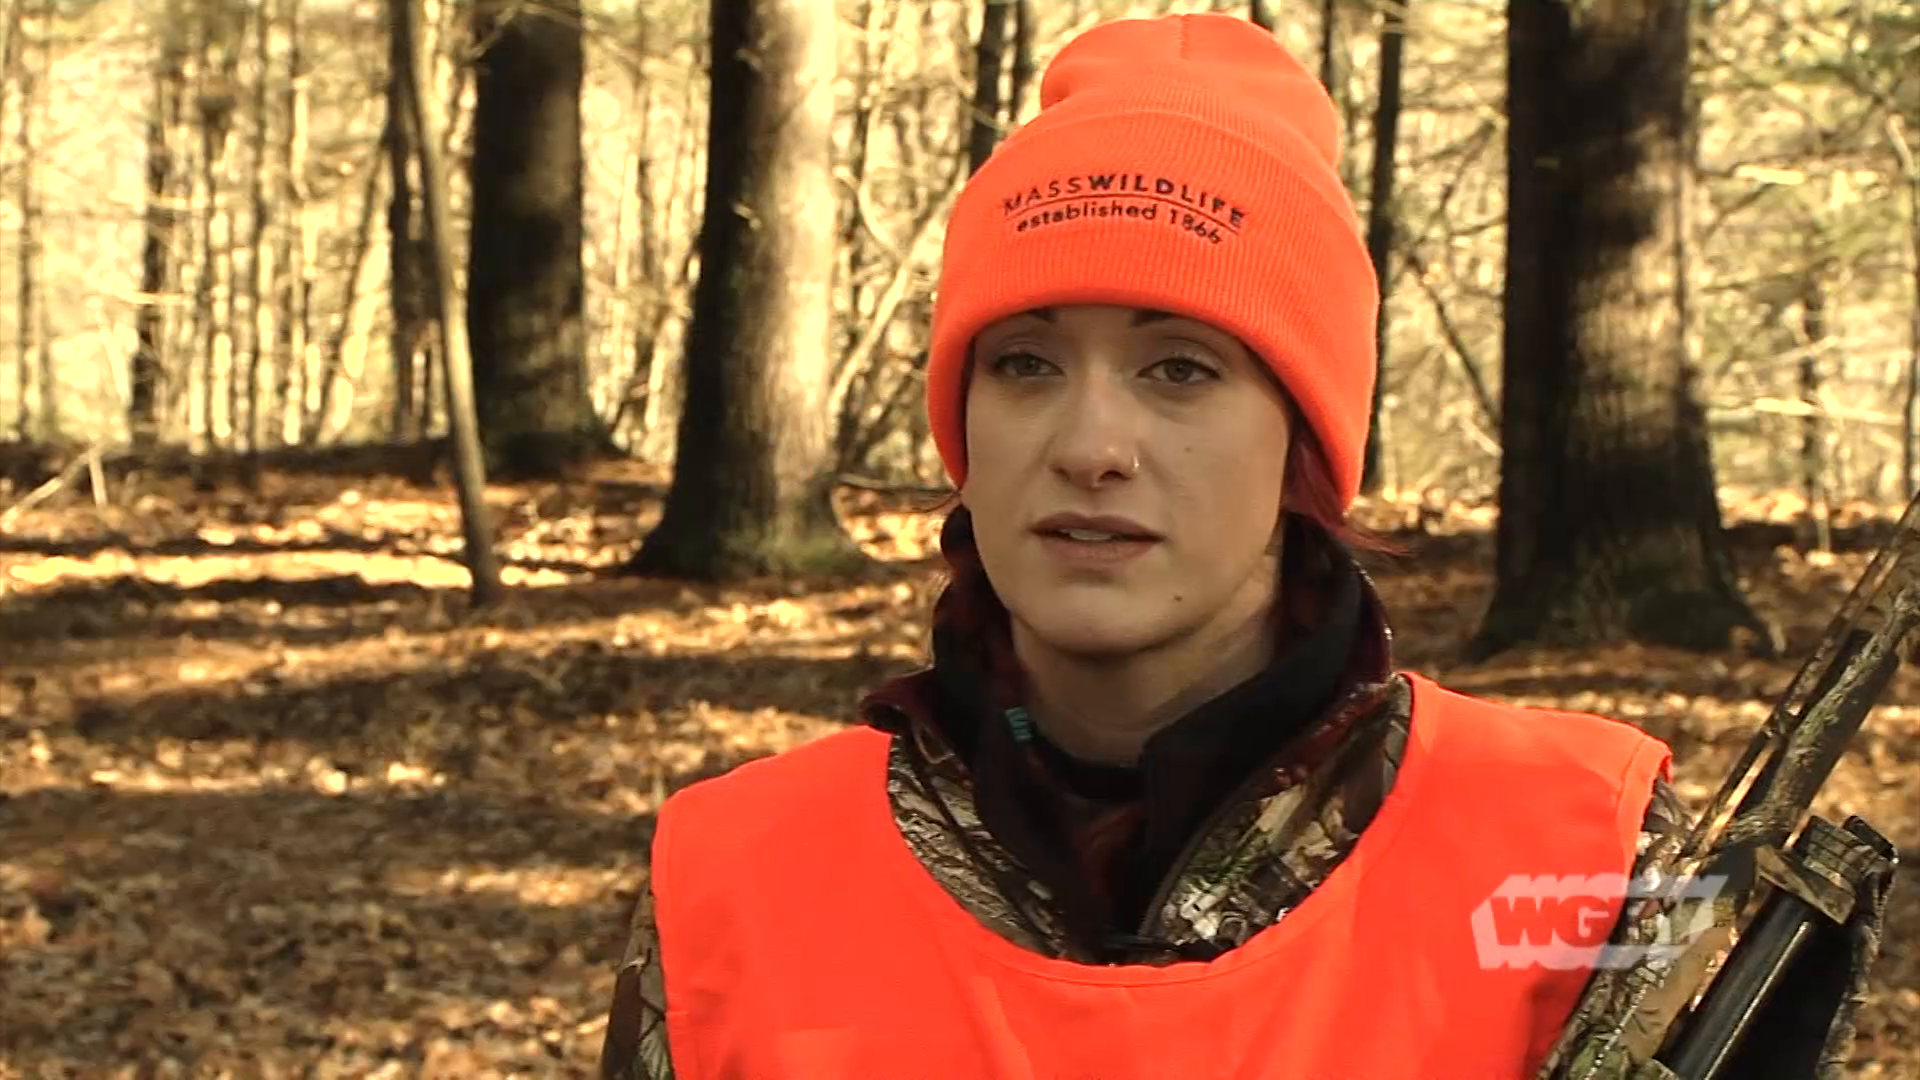 Massachusetts has about 70,000 licensed hunters, and the marjority are men. But, there's a new effort to recruit more female hunters in the state.